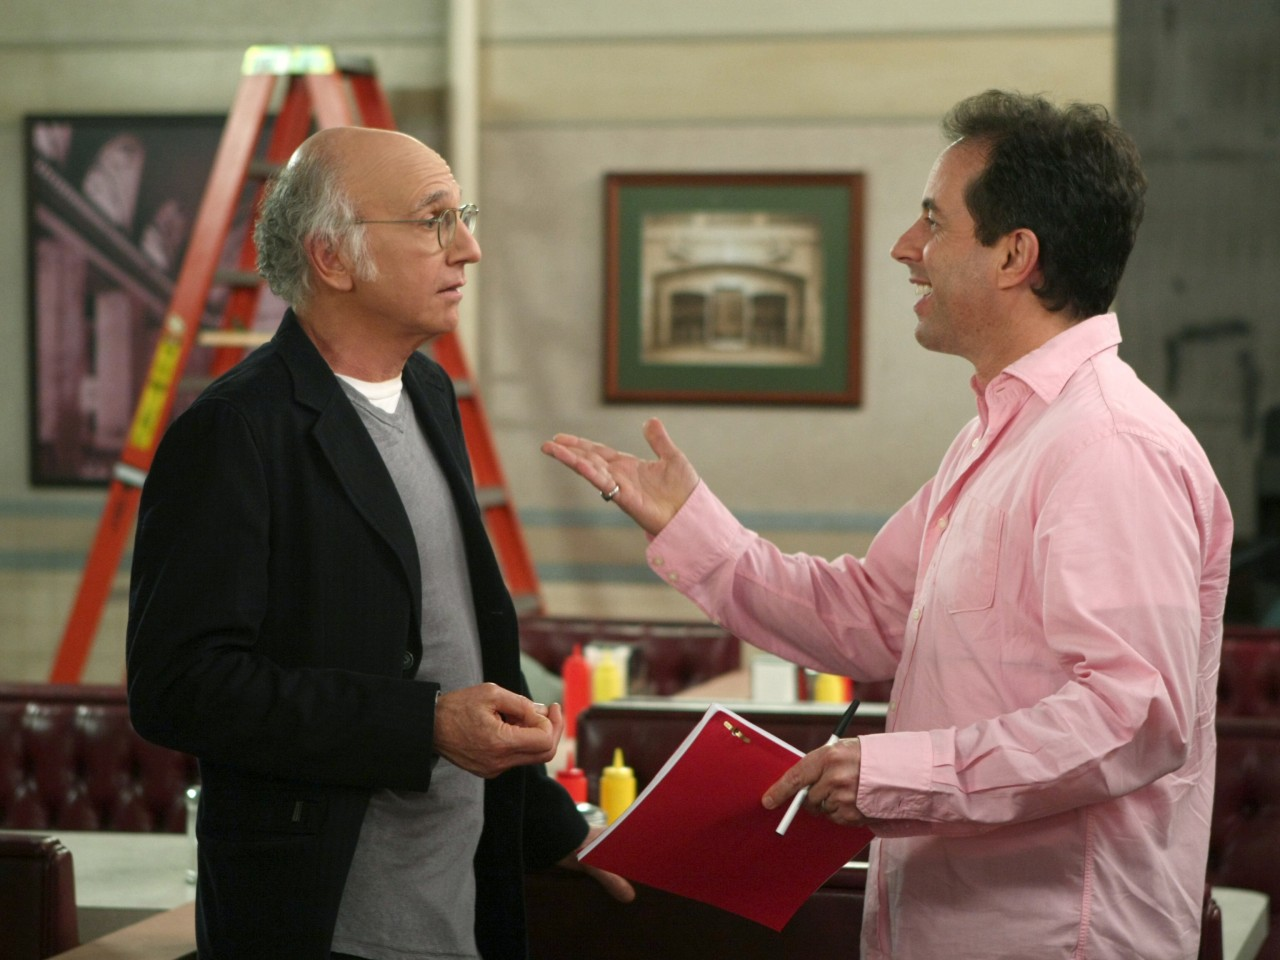 larry_david_and_jerry_seinfeld-1280x960